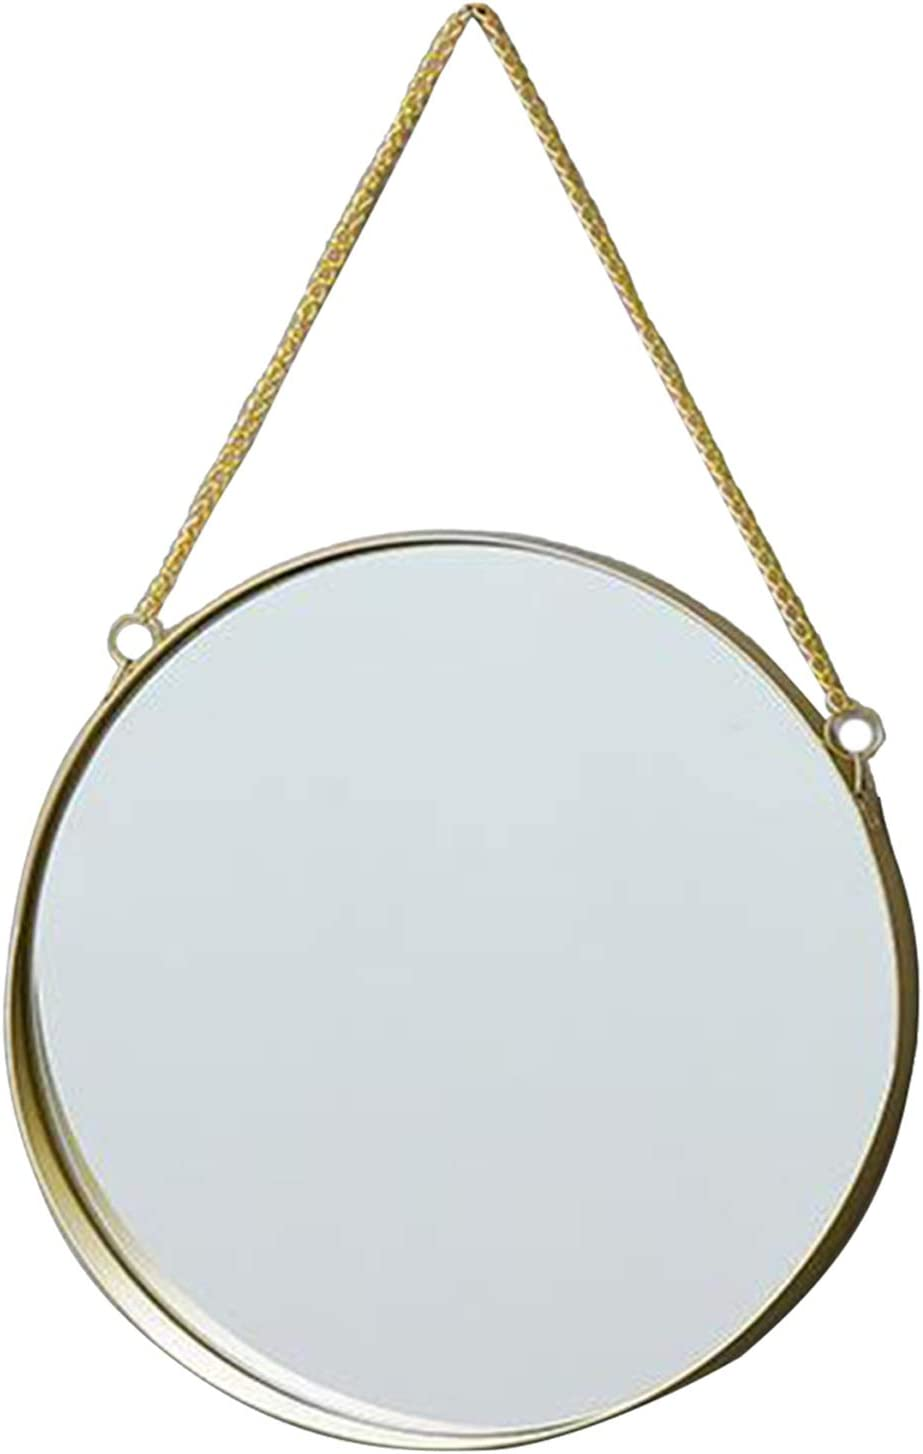 M Flameer Round Hanging Mirror Gold Decorative Geometry Wall Mounted Mirror with Chain for Home Decor in Living Room Bathroom Bedroom Entryway